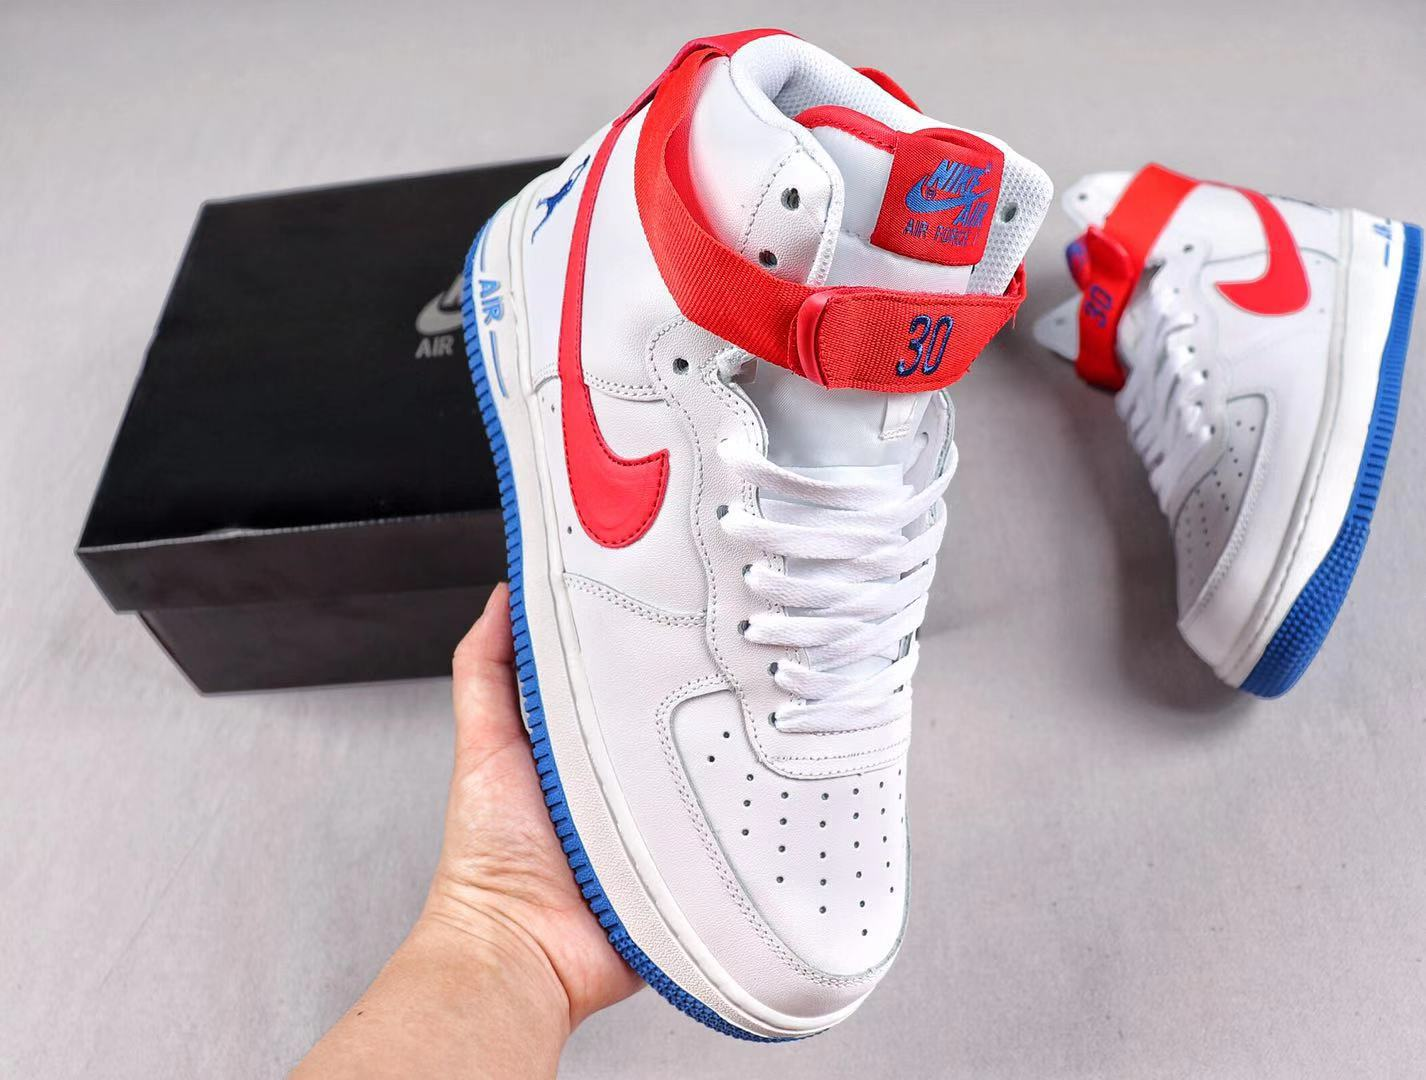 """Nike Air Force 1 High Retro """"Rude Awakening"""" White/Red-Blue Sneakers Sale AT2528-316"""